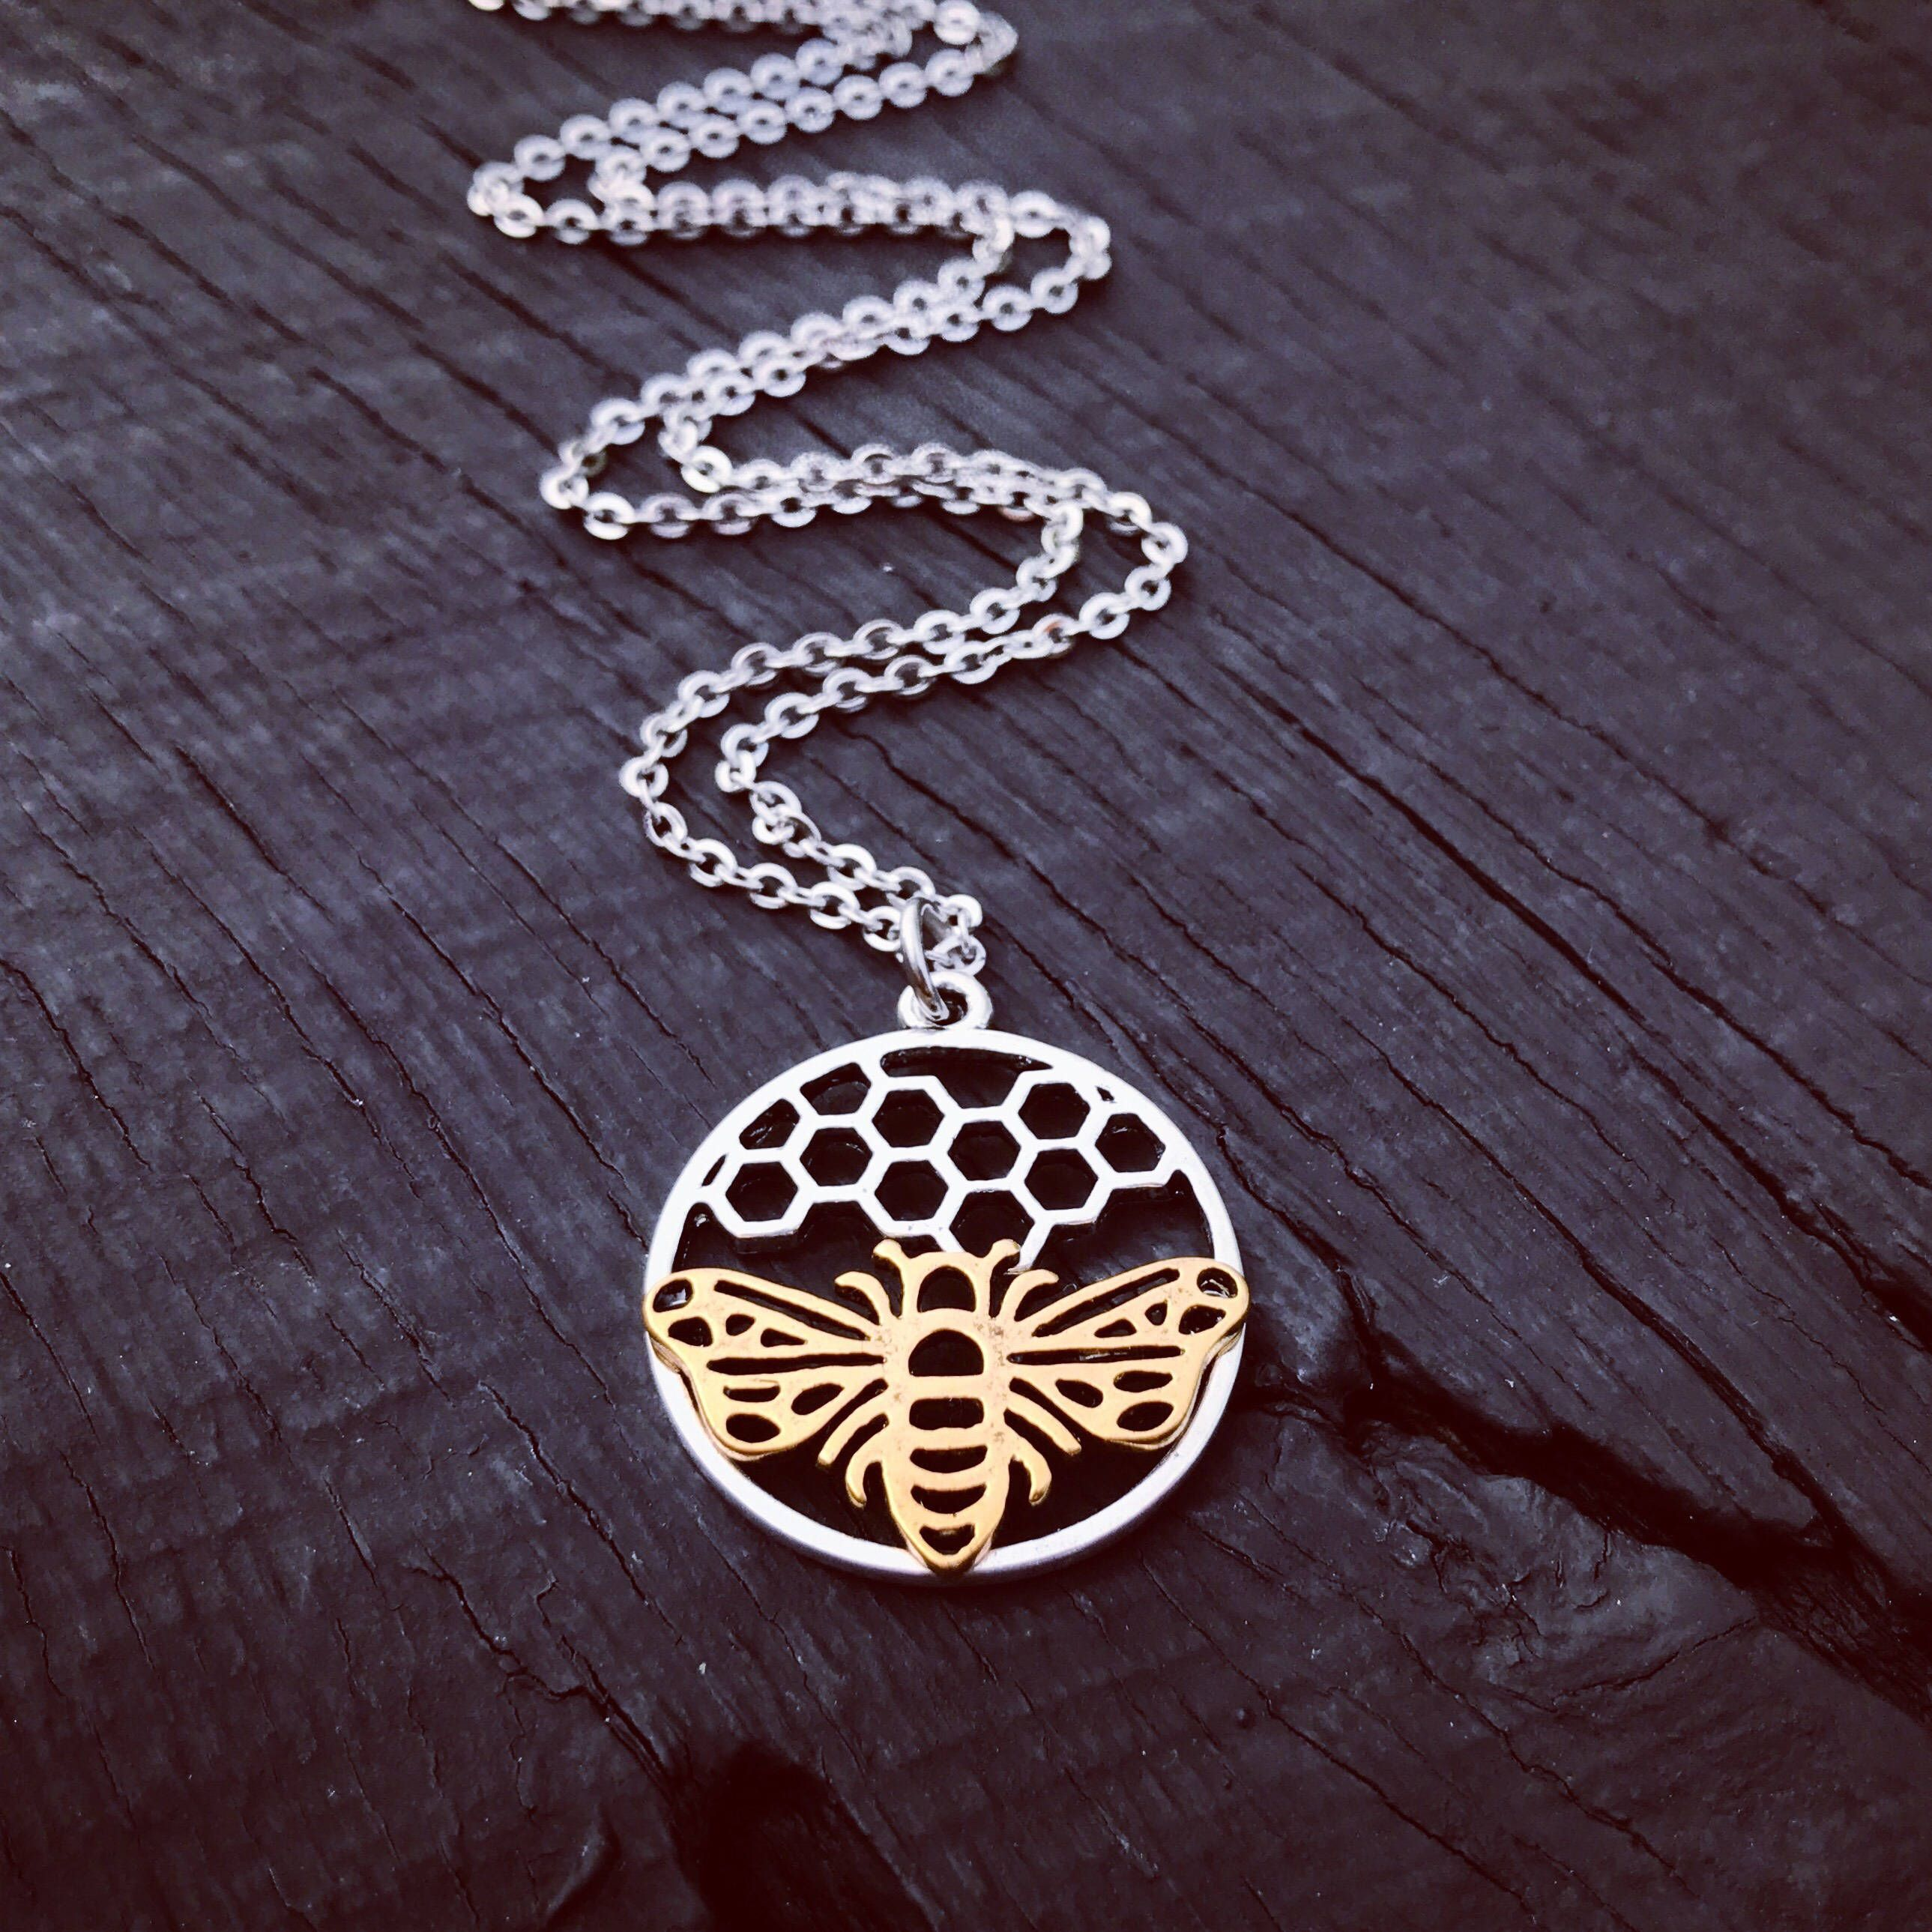 honeybee view thebrianmcdermottband necklace craftbnb honey pendant larger com l bee